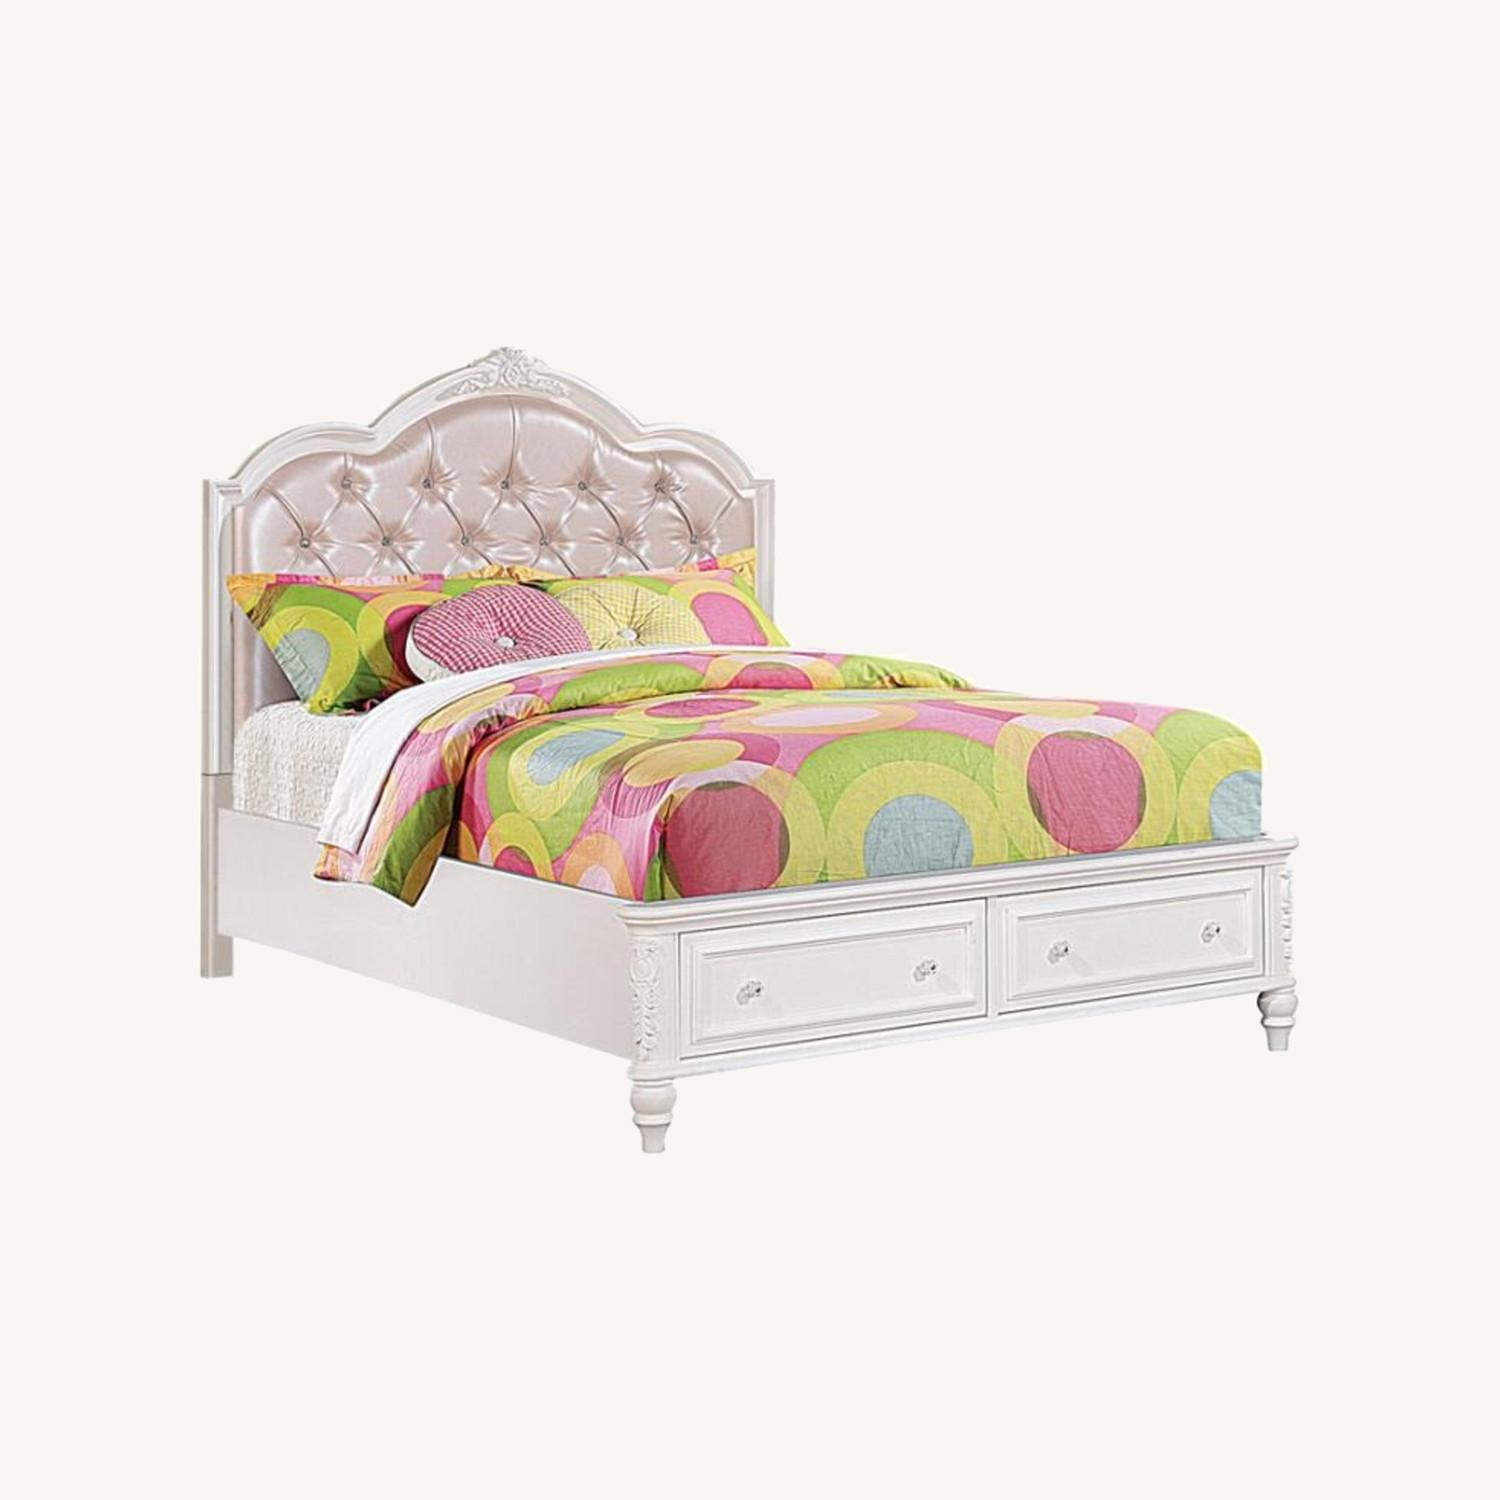 Twin Bed In White Finish W/ Pink Leatherette - image-4